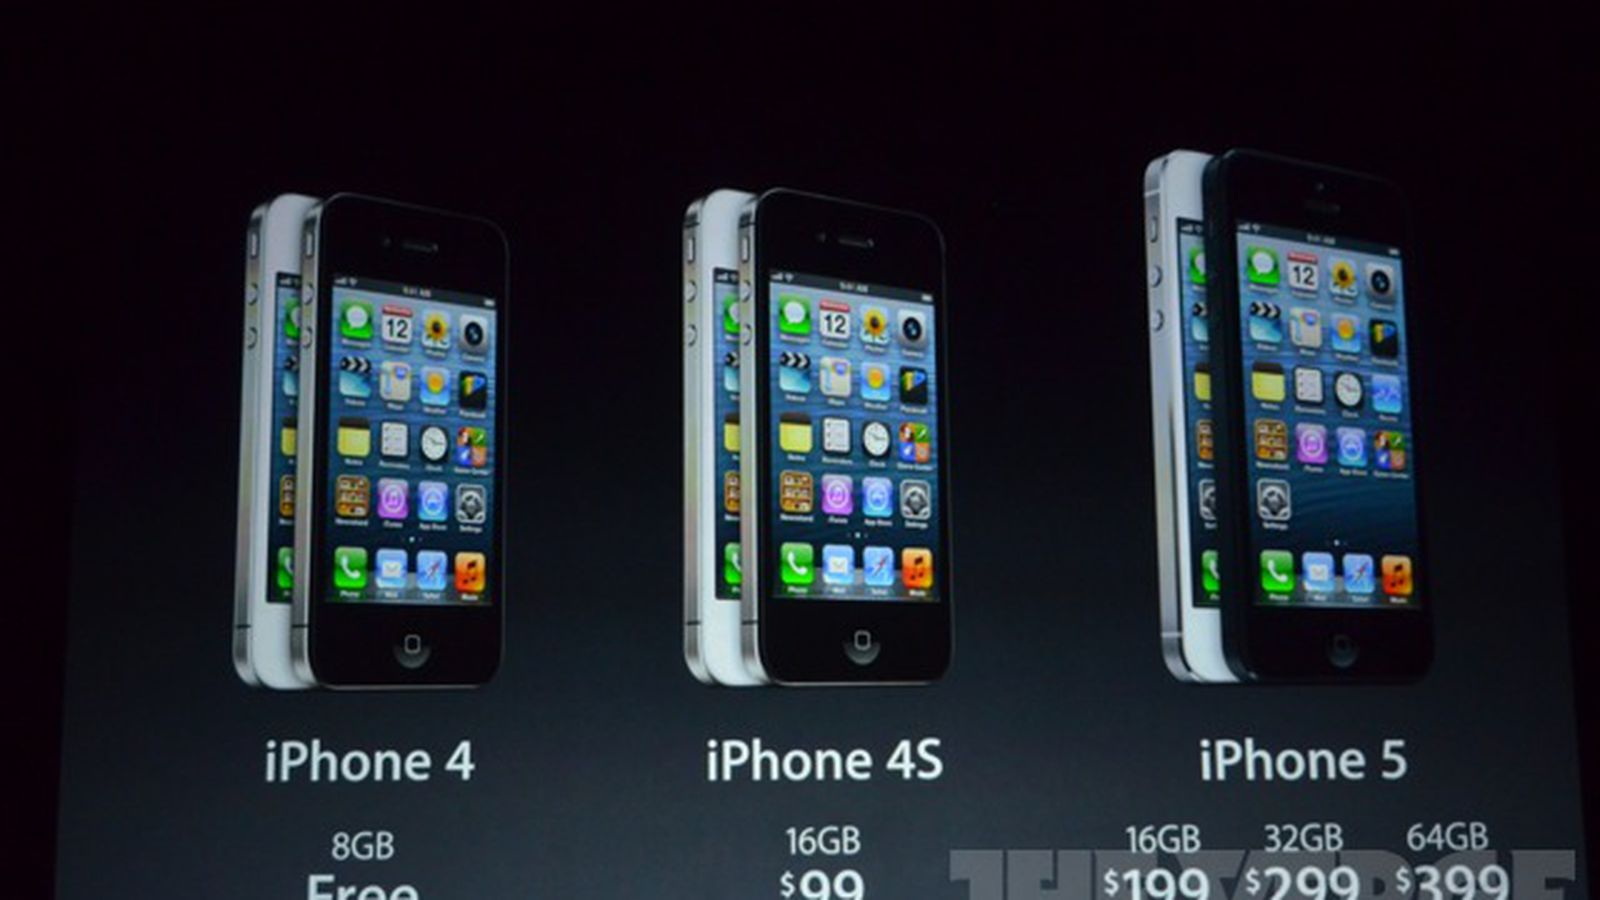 iphone 4s drops to 99 iphone 4 now free apple discontinues the 3gs the verge. Black Bedroom Furniture Sets. Home Design Ideas